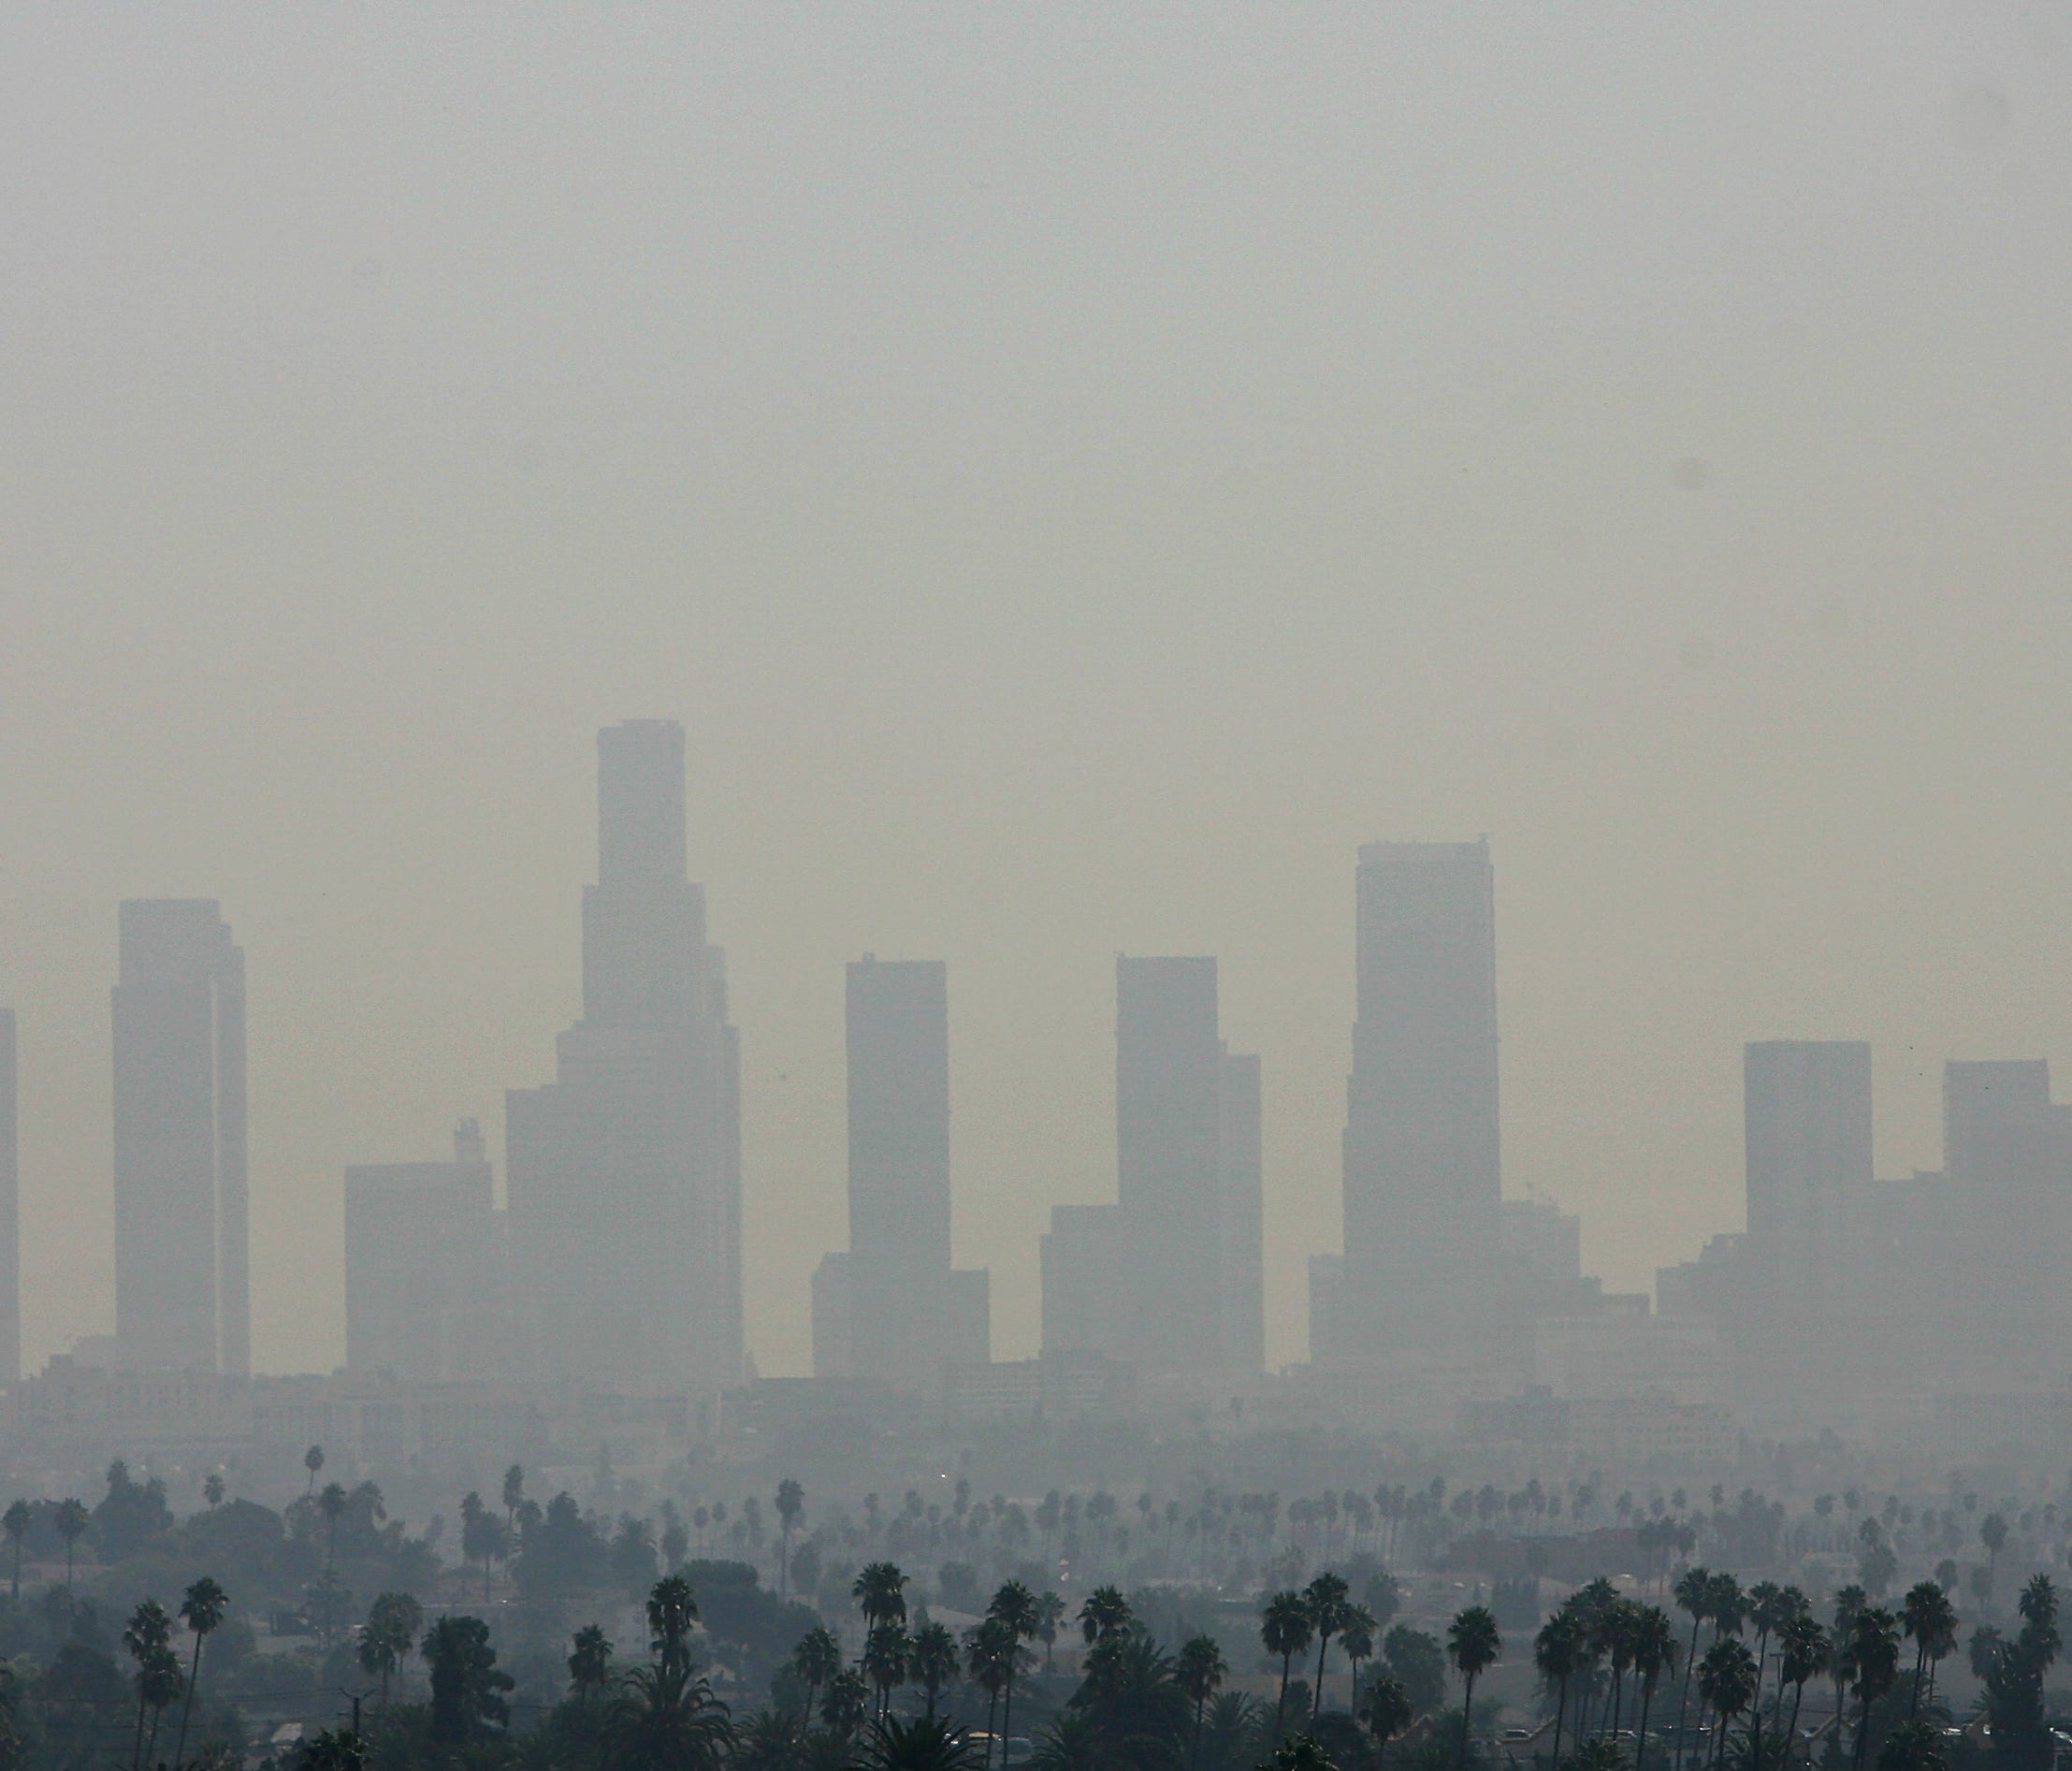 A view of air pollution over downtown Los Angeles, on Sept. 20, 2006. Los Angeles had the nation's worst ozone air pollution, according to a new report released by the American Lung Association.